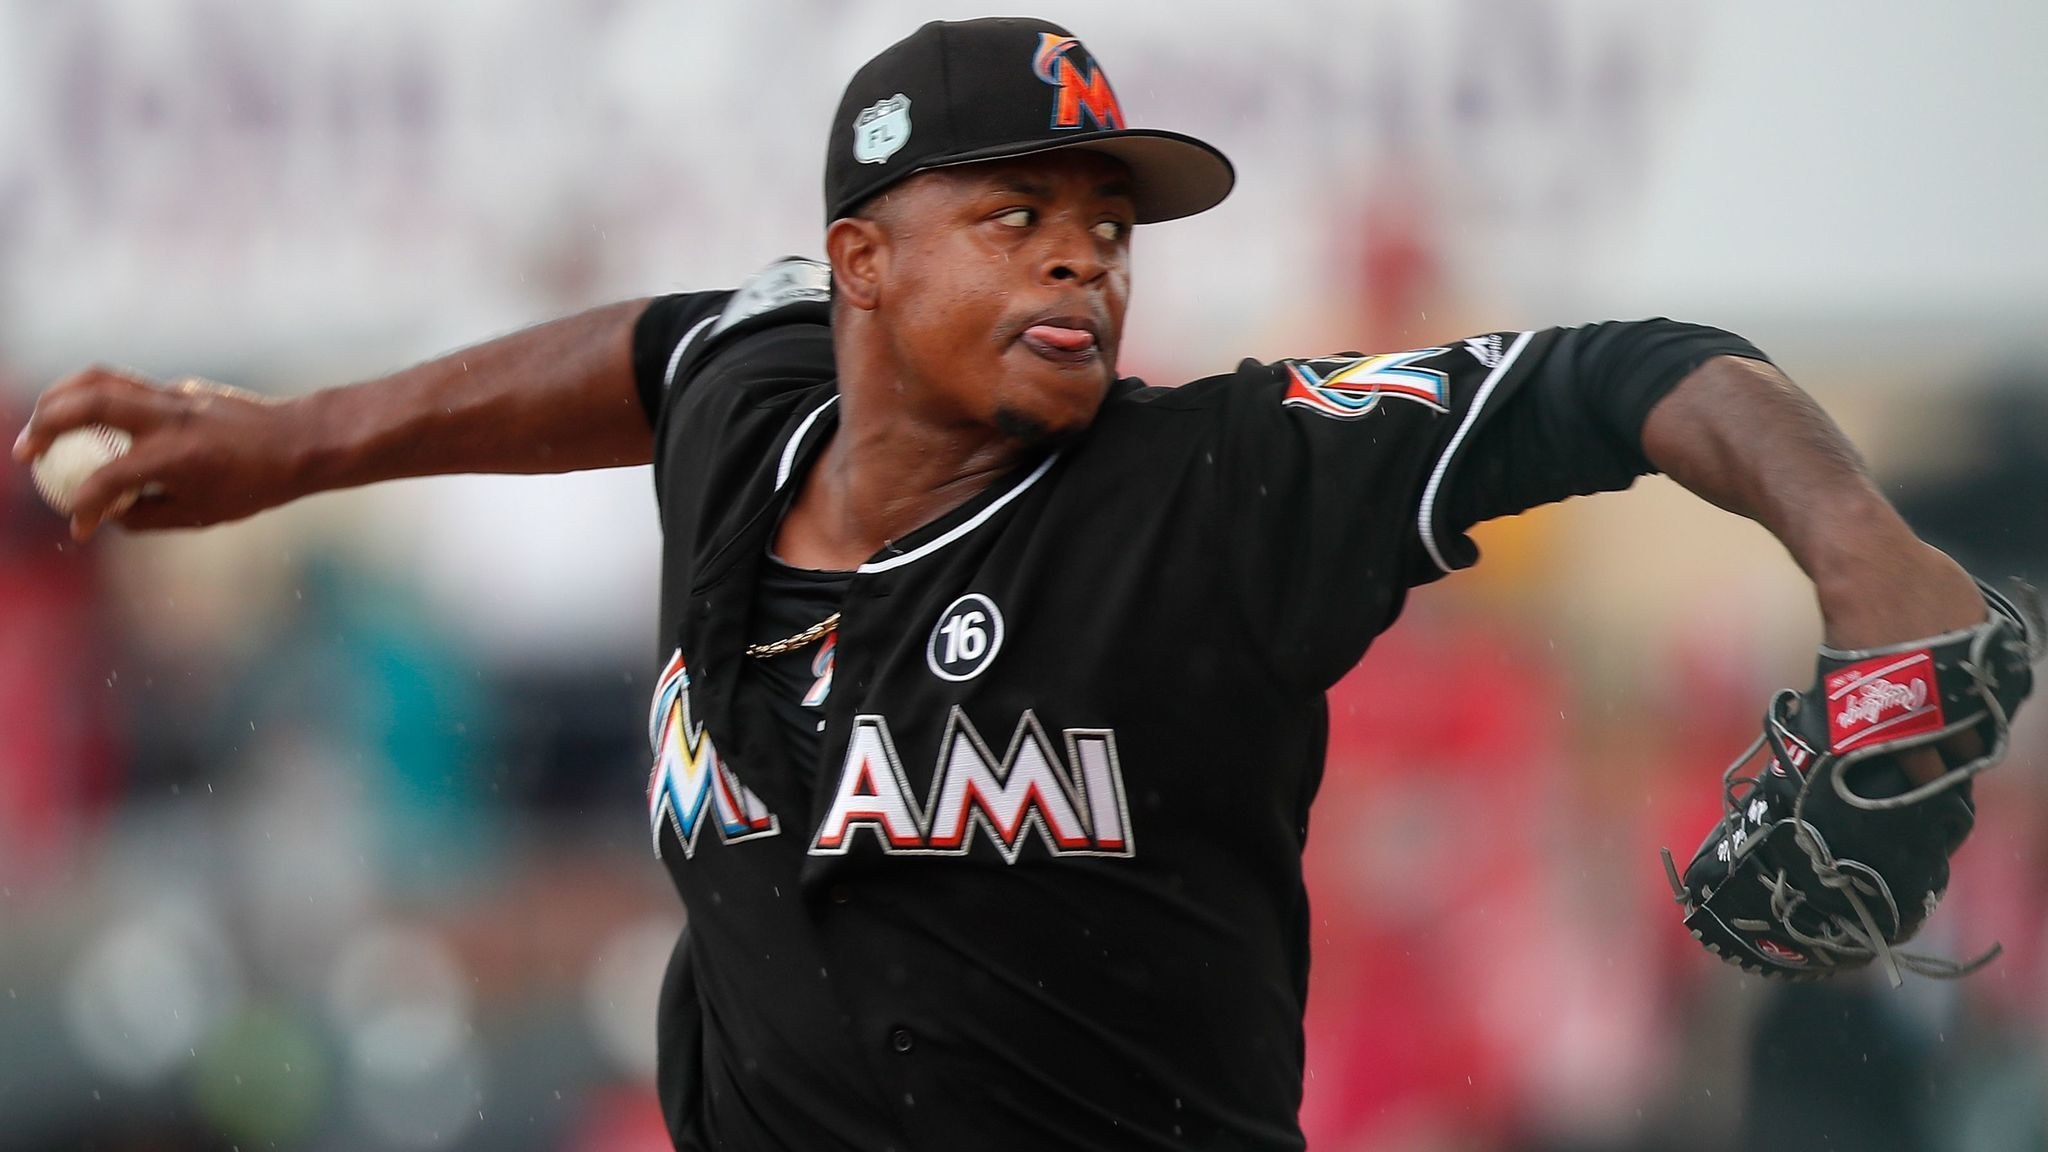 Fl-sp-marlins-volquez-opening-day-20170324